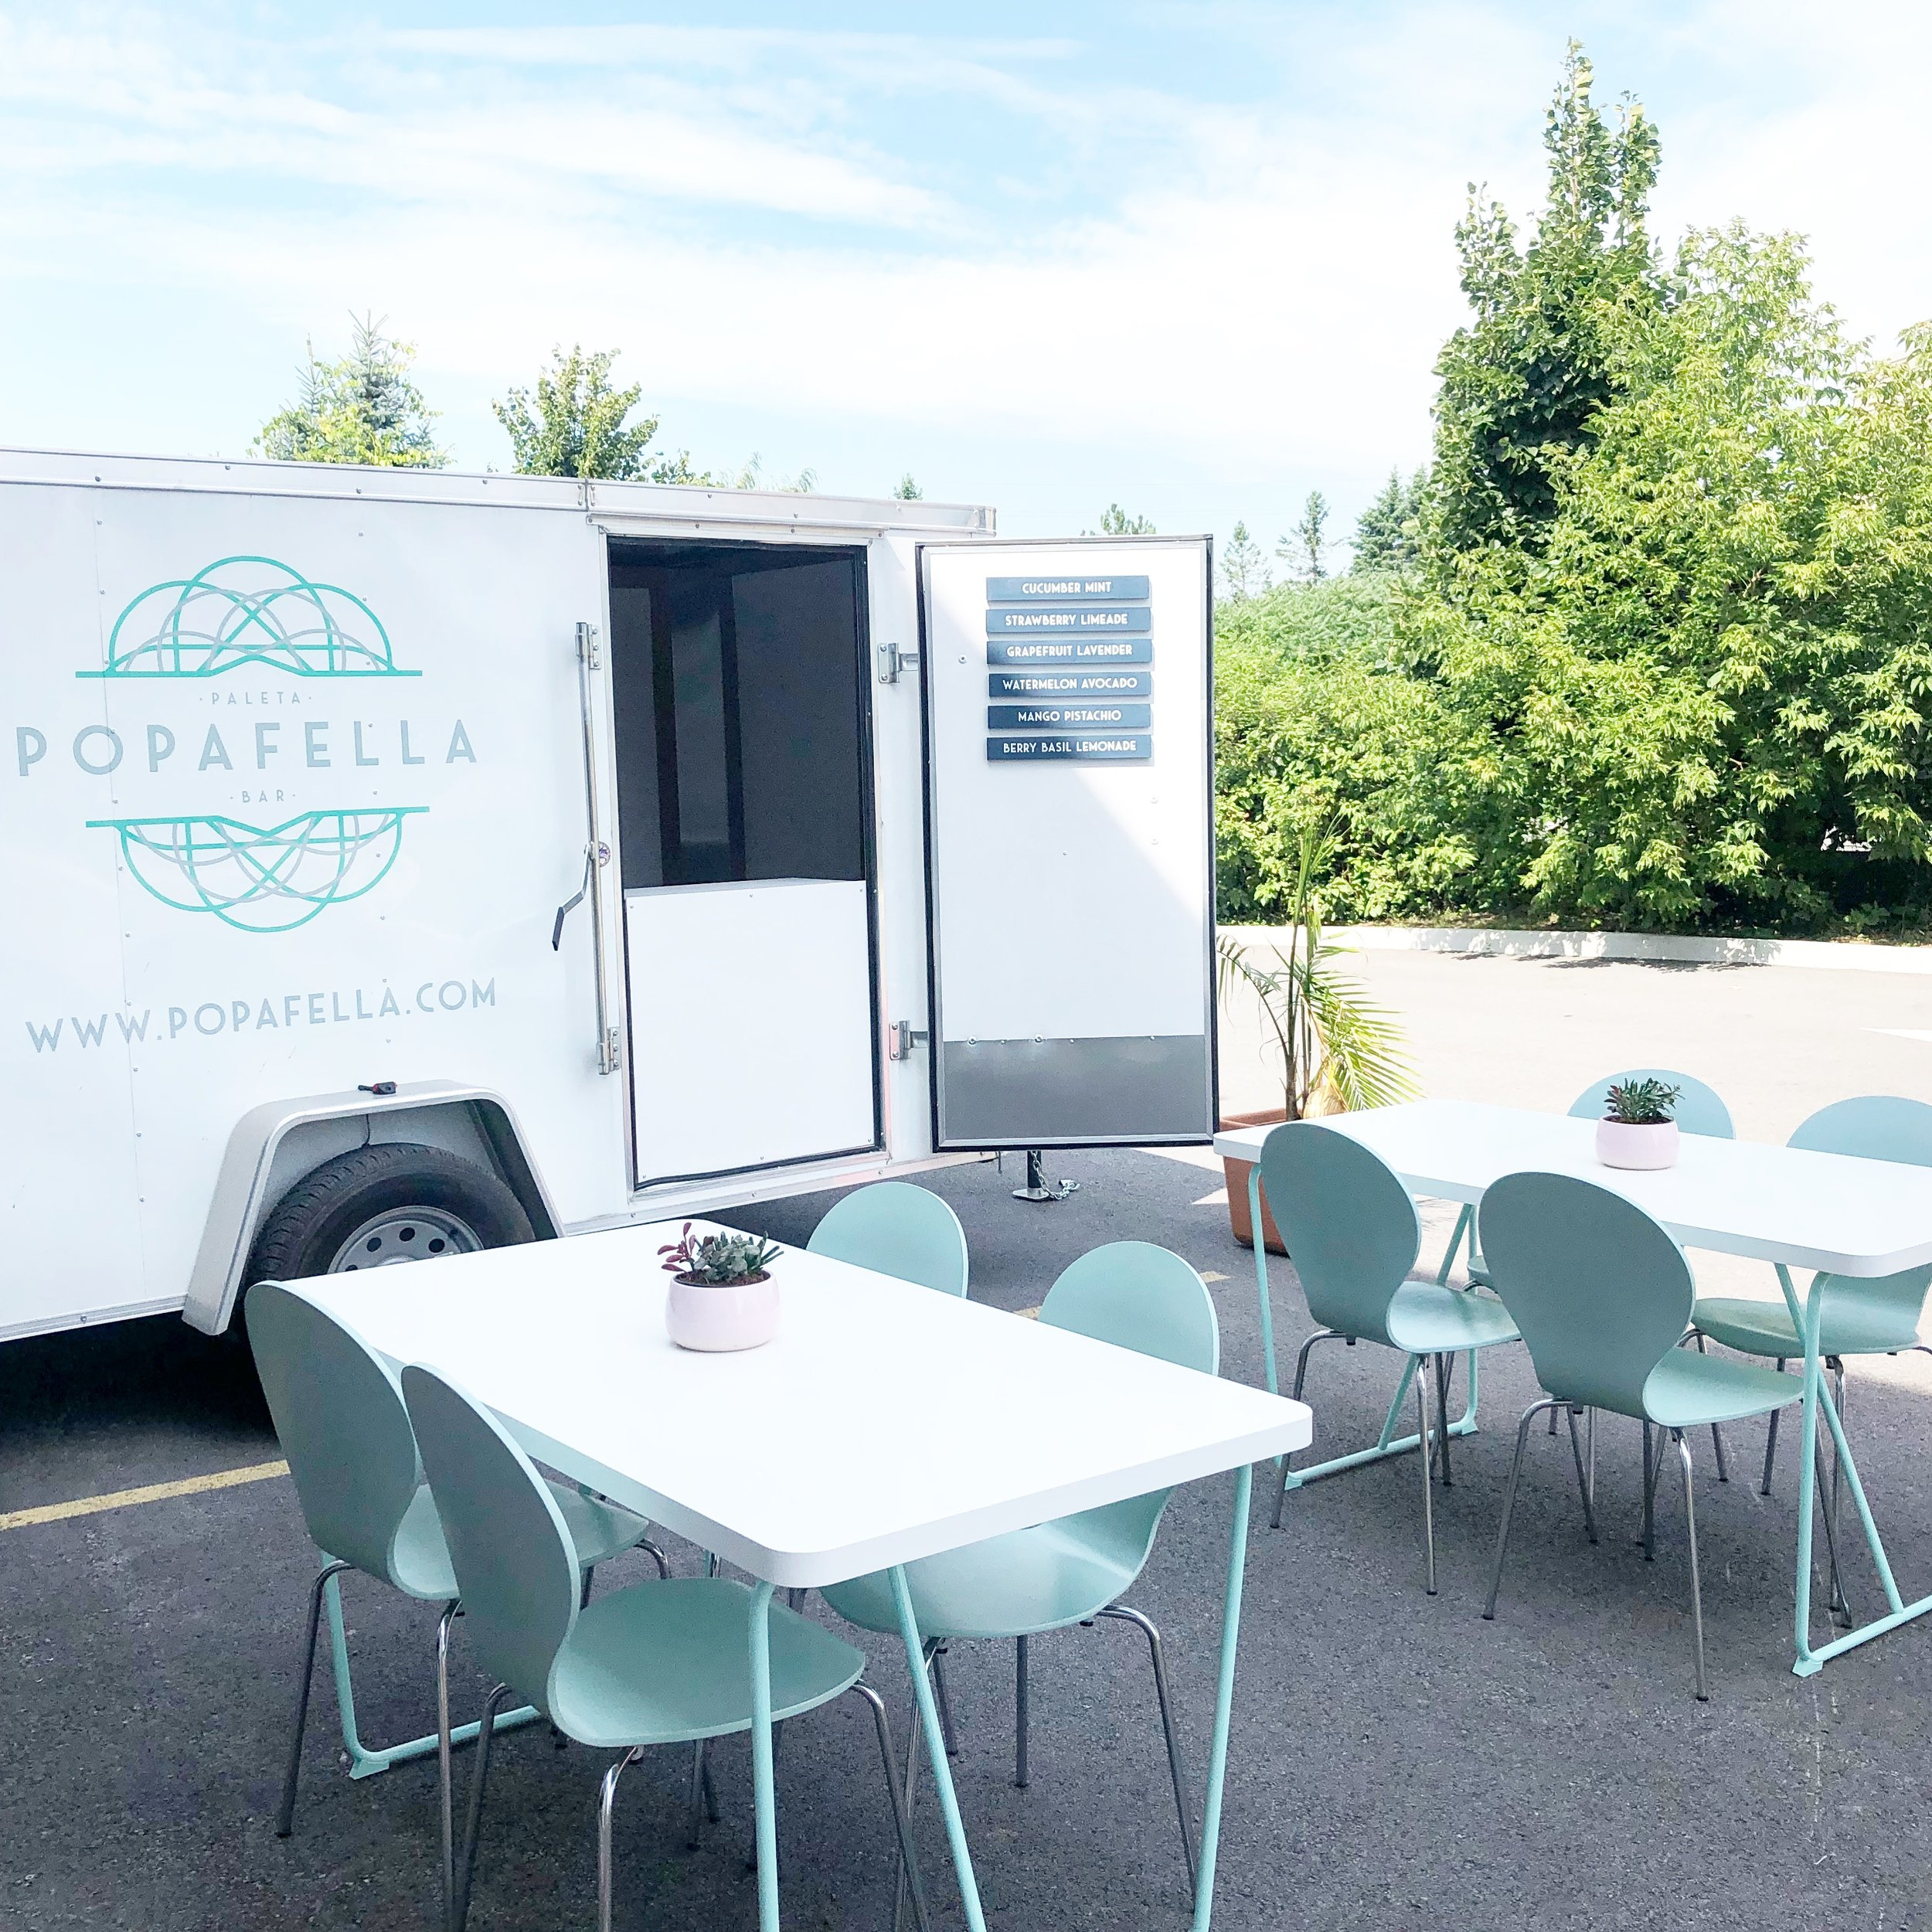 Our catering comes with Paleta trailer, tables, chairs and one server